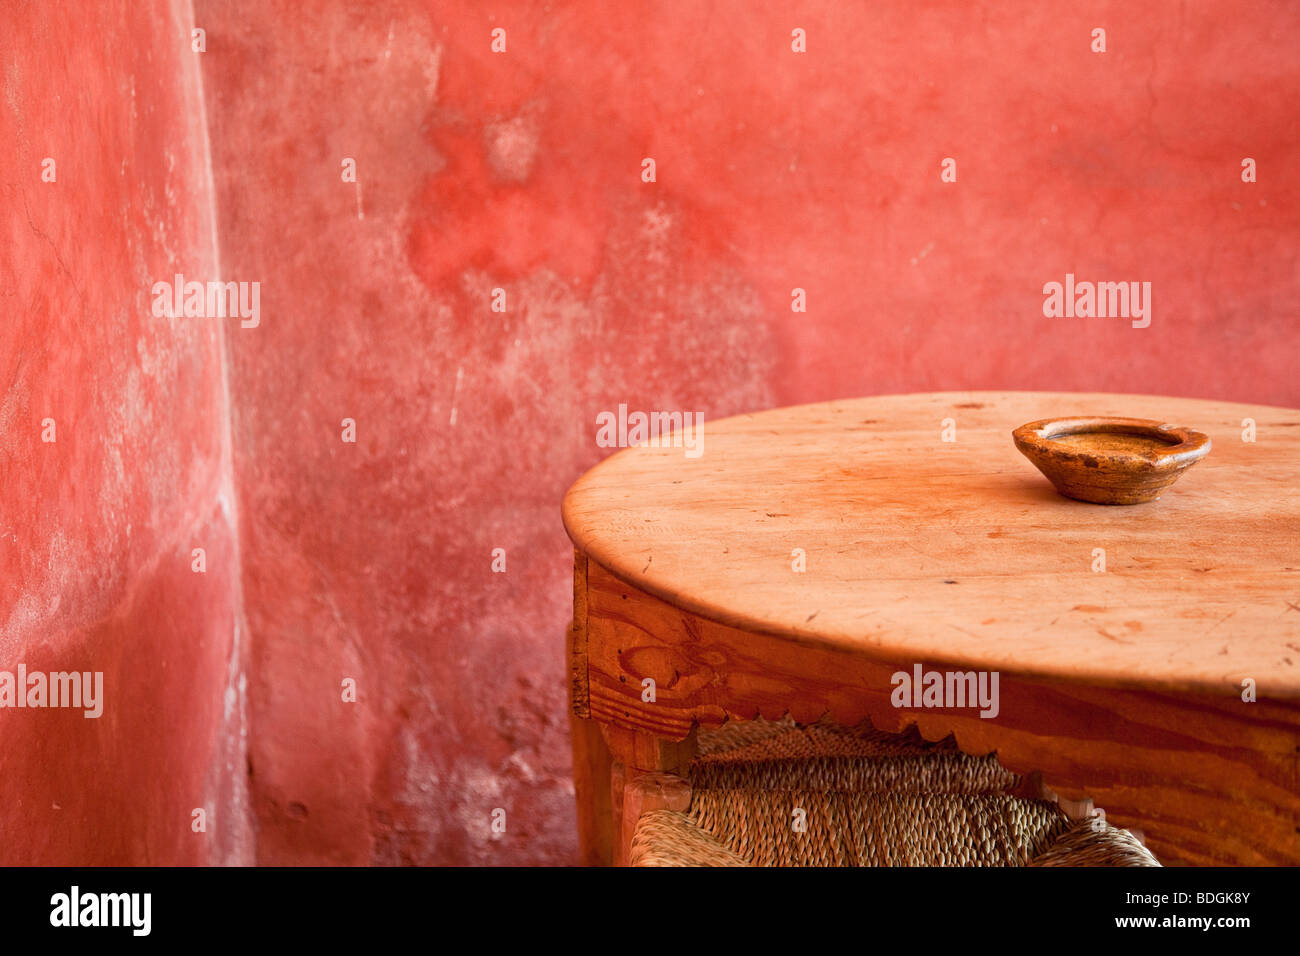 Small table, ash tray and stool in a Moroccan café with a bright red wall - Stock Image